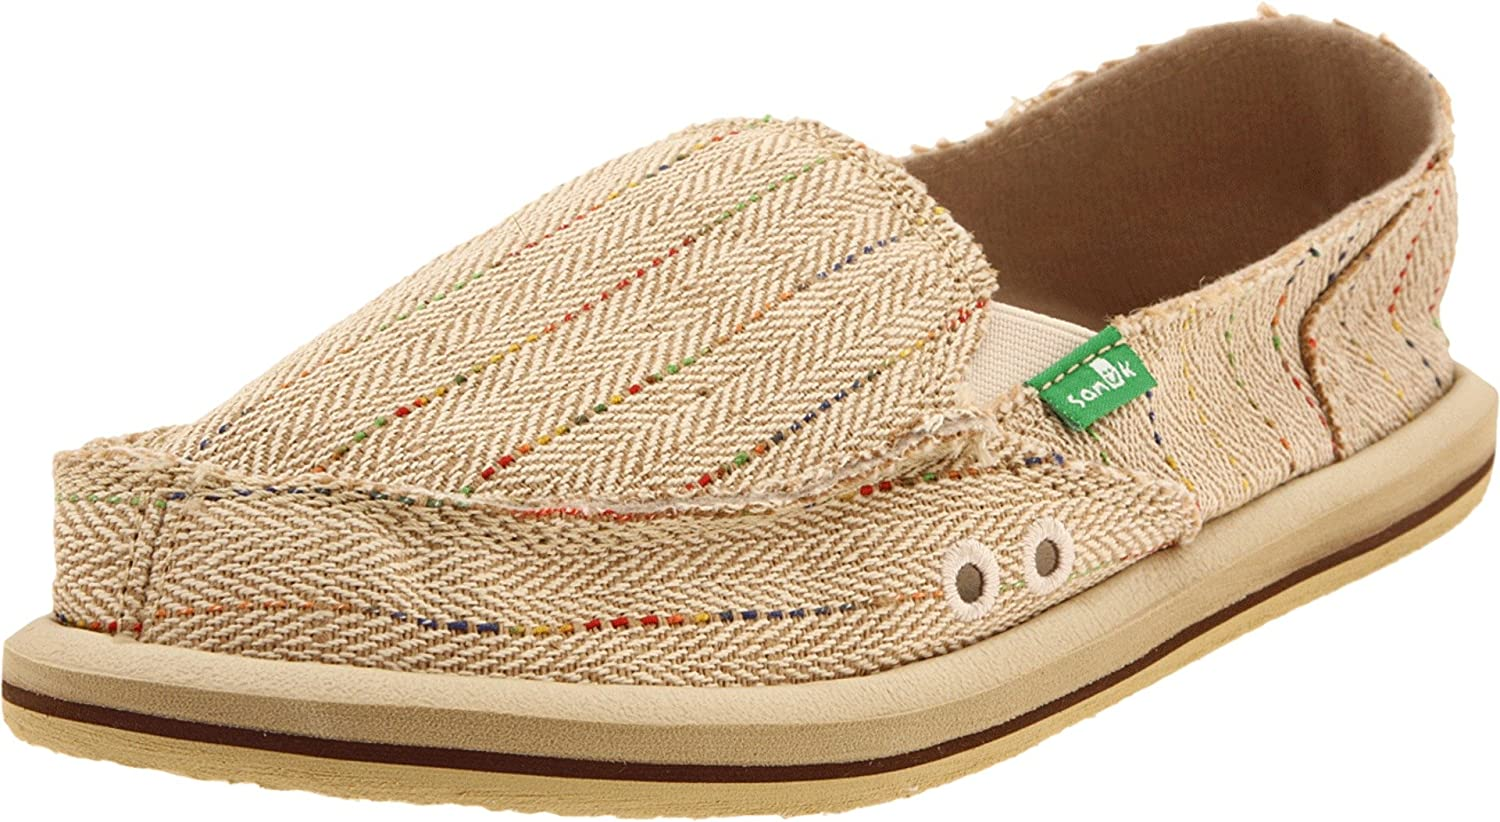 Sanuk Donna Beige-tr-sw241 Donna 29418011, femme Chaussures basses femme Beige-tr-sw241 8e98739 - jessicalock.space